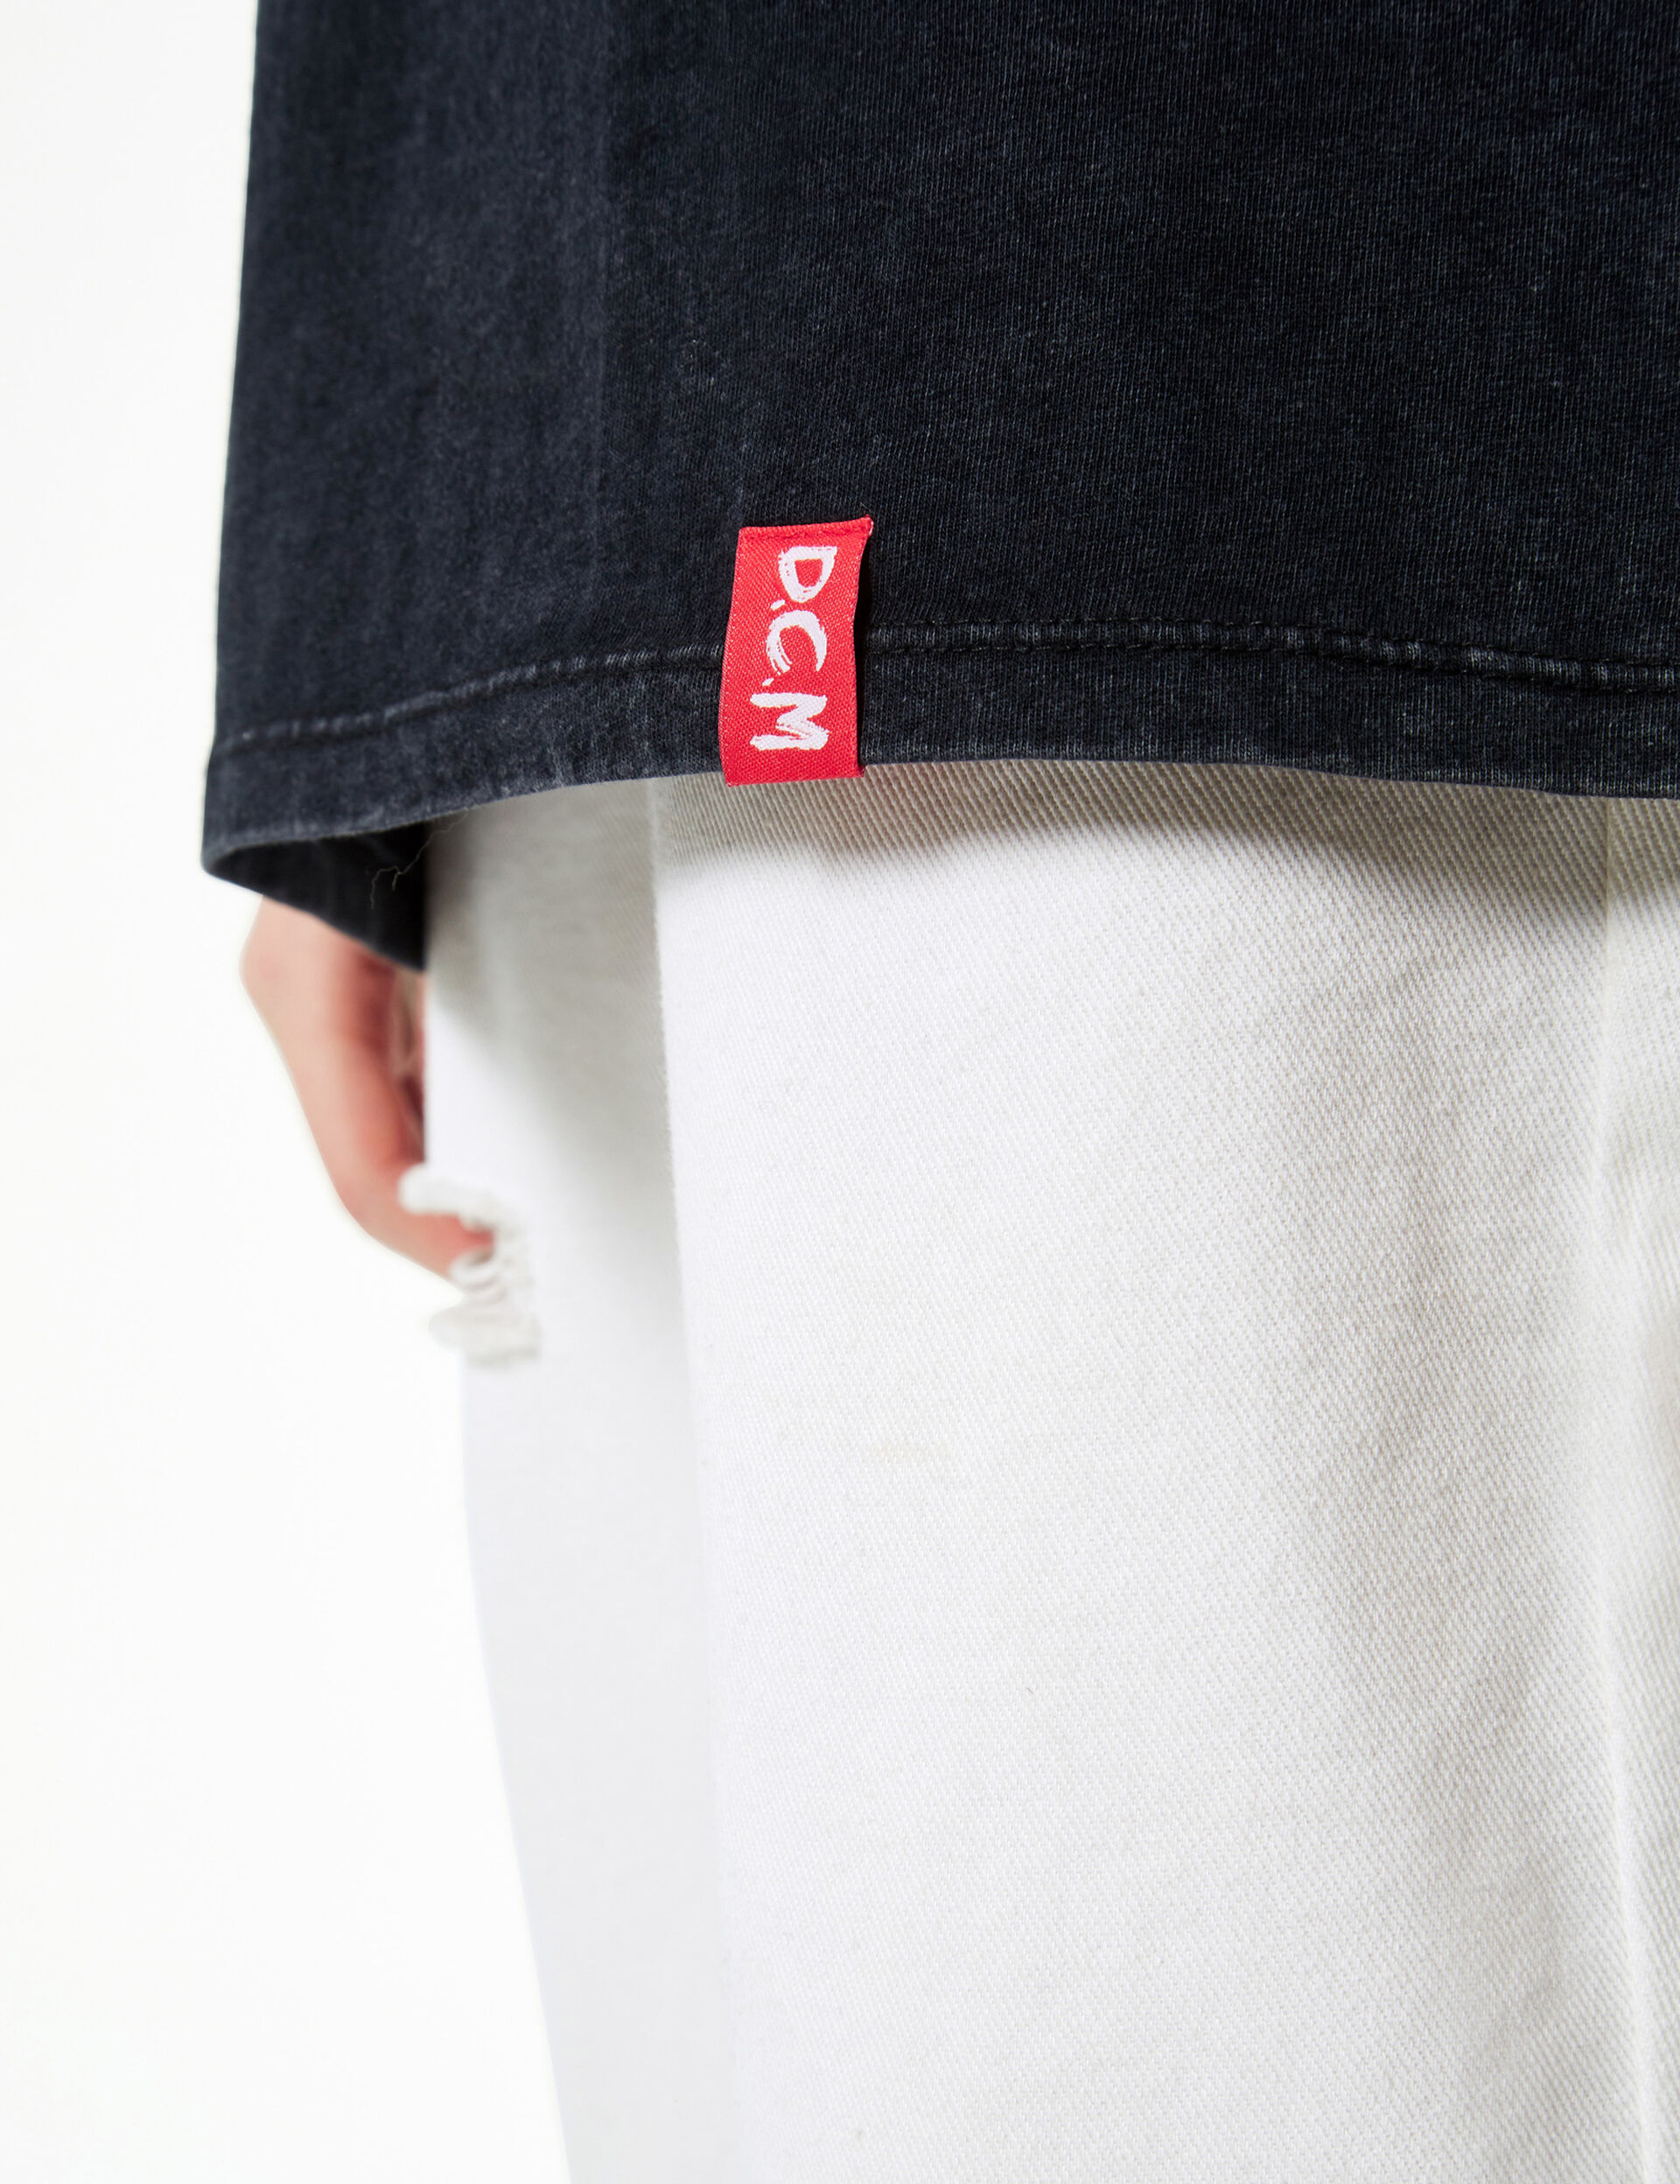 Oversized no stereotypes T-shirt